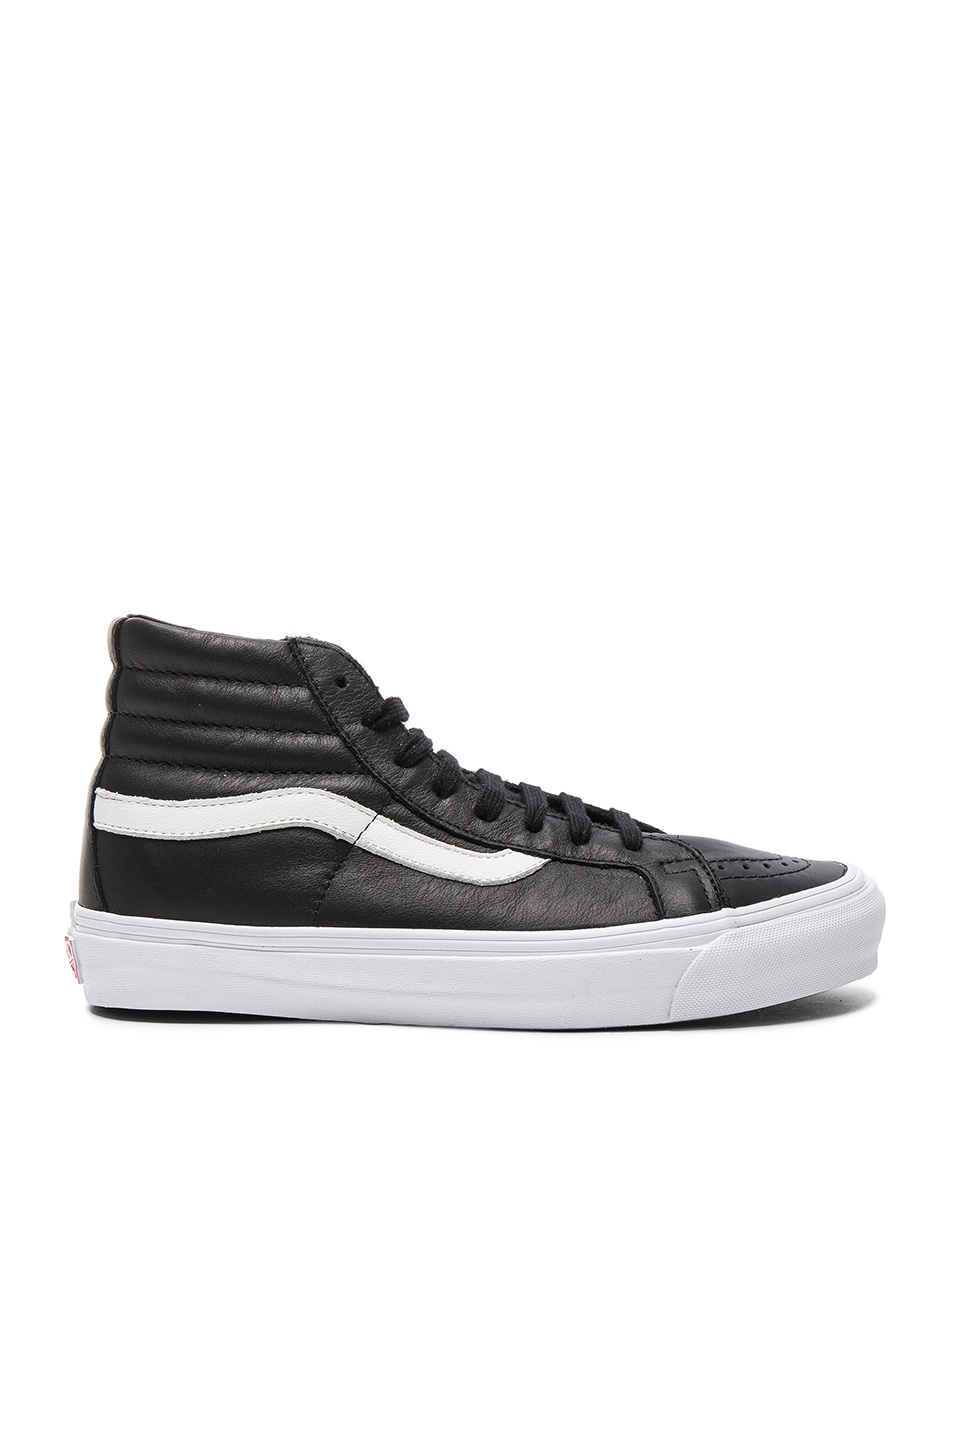 vans sk8 hi lx white leather nz